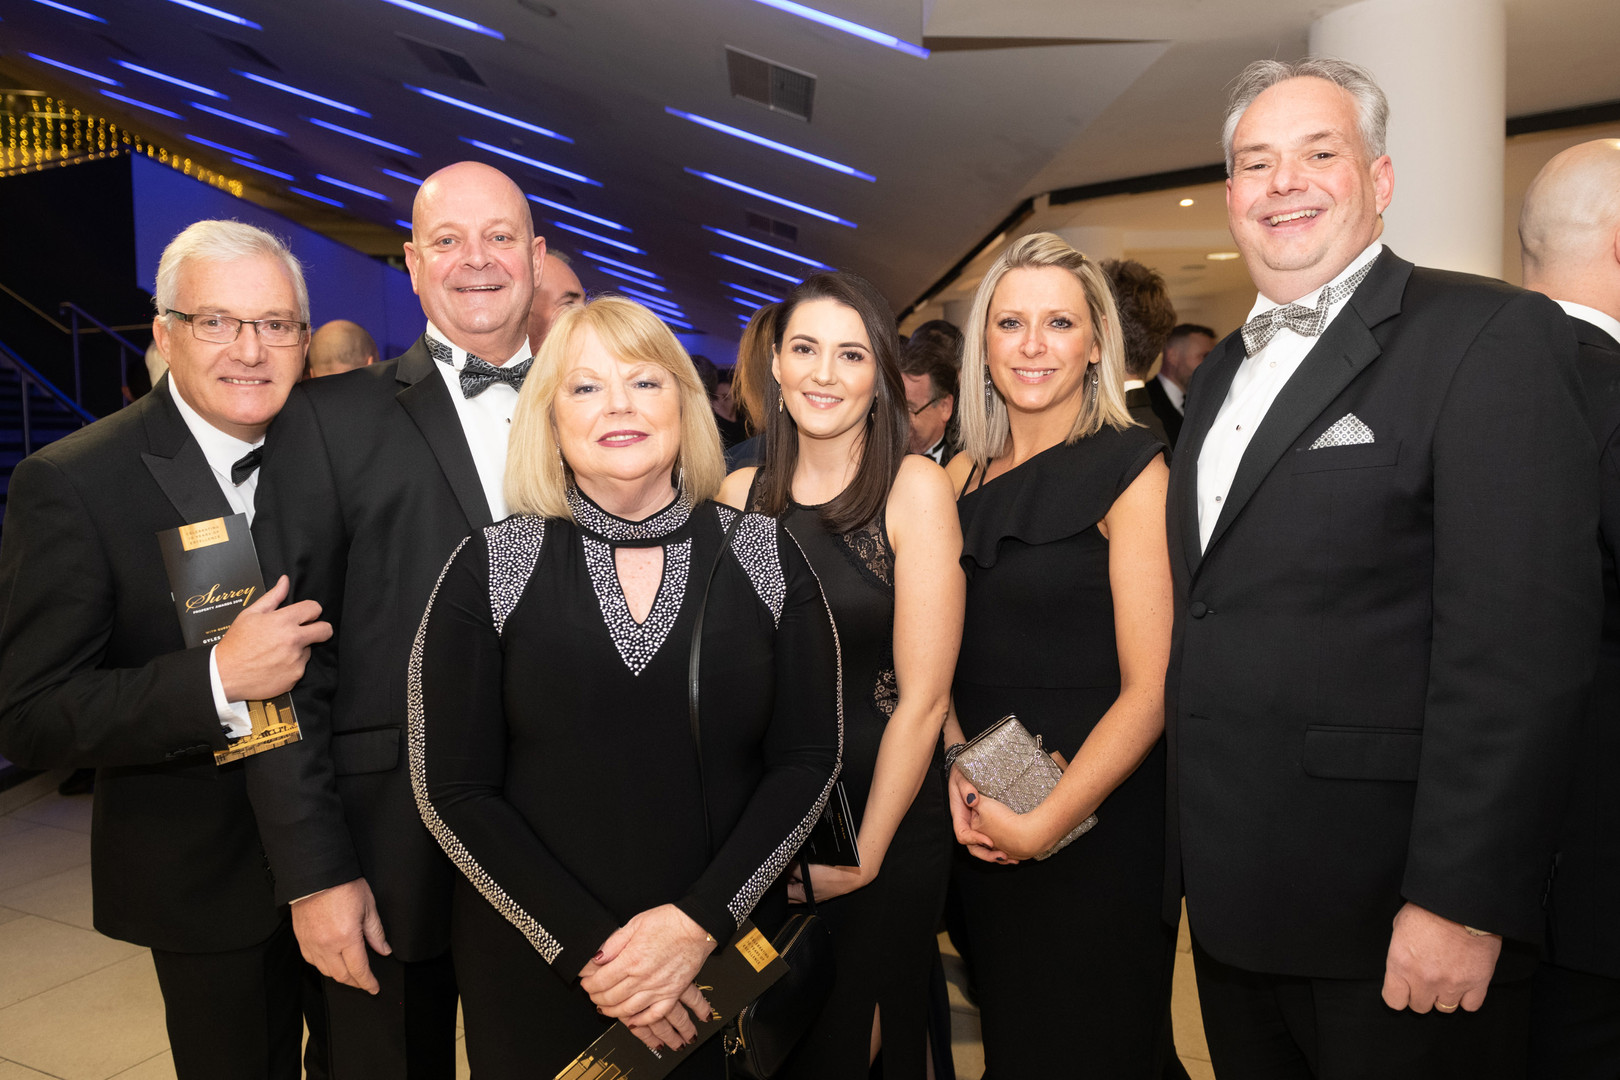 SurreyPropertyAwards_Nov2019_191.jpg